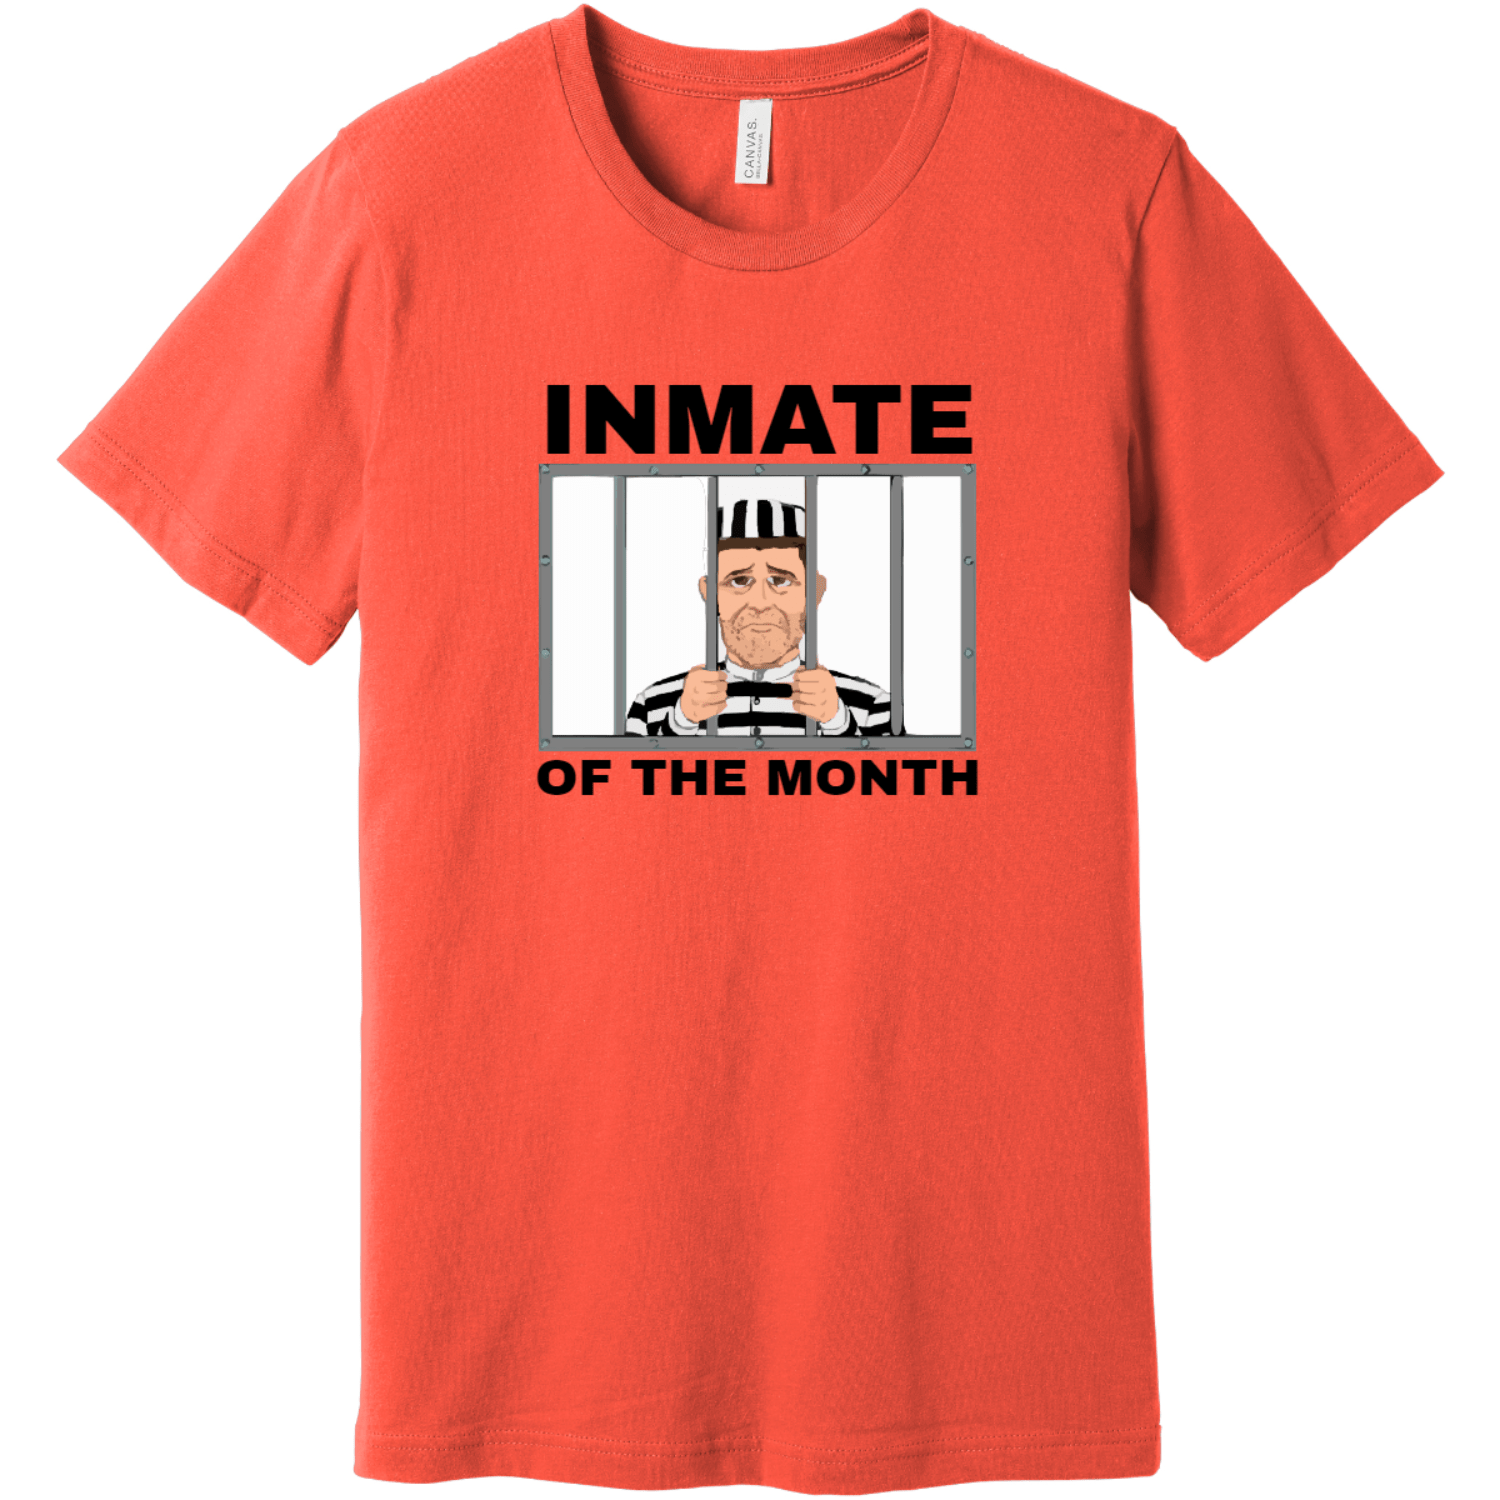 Inmate Of The Month Jail T-Shirt Coral Bella Canvas Unisex Tee BC3001